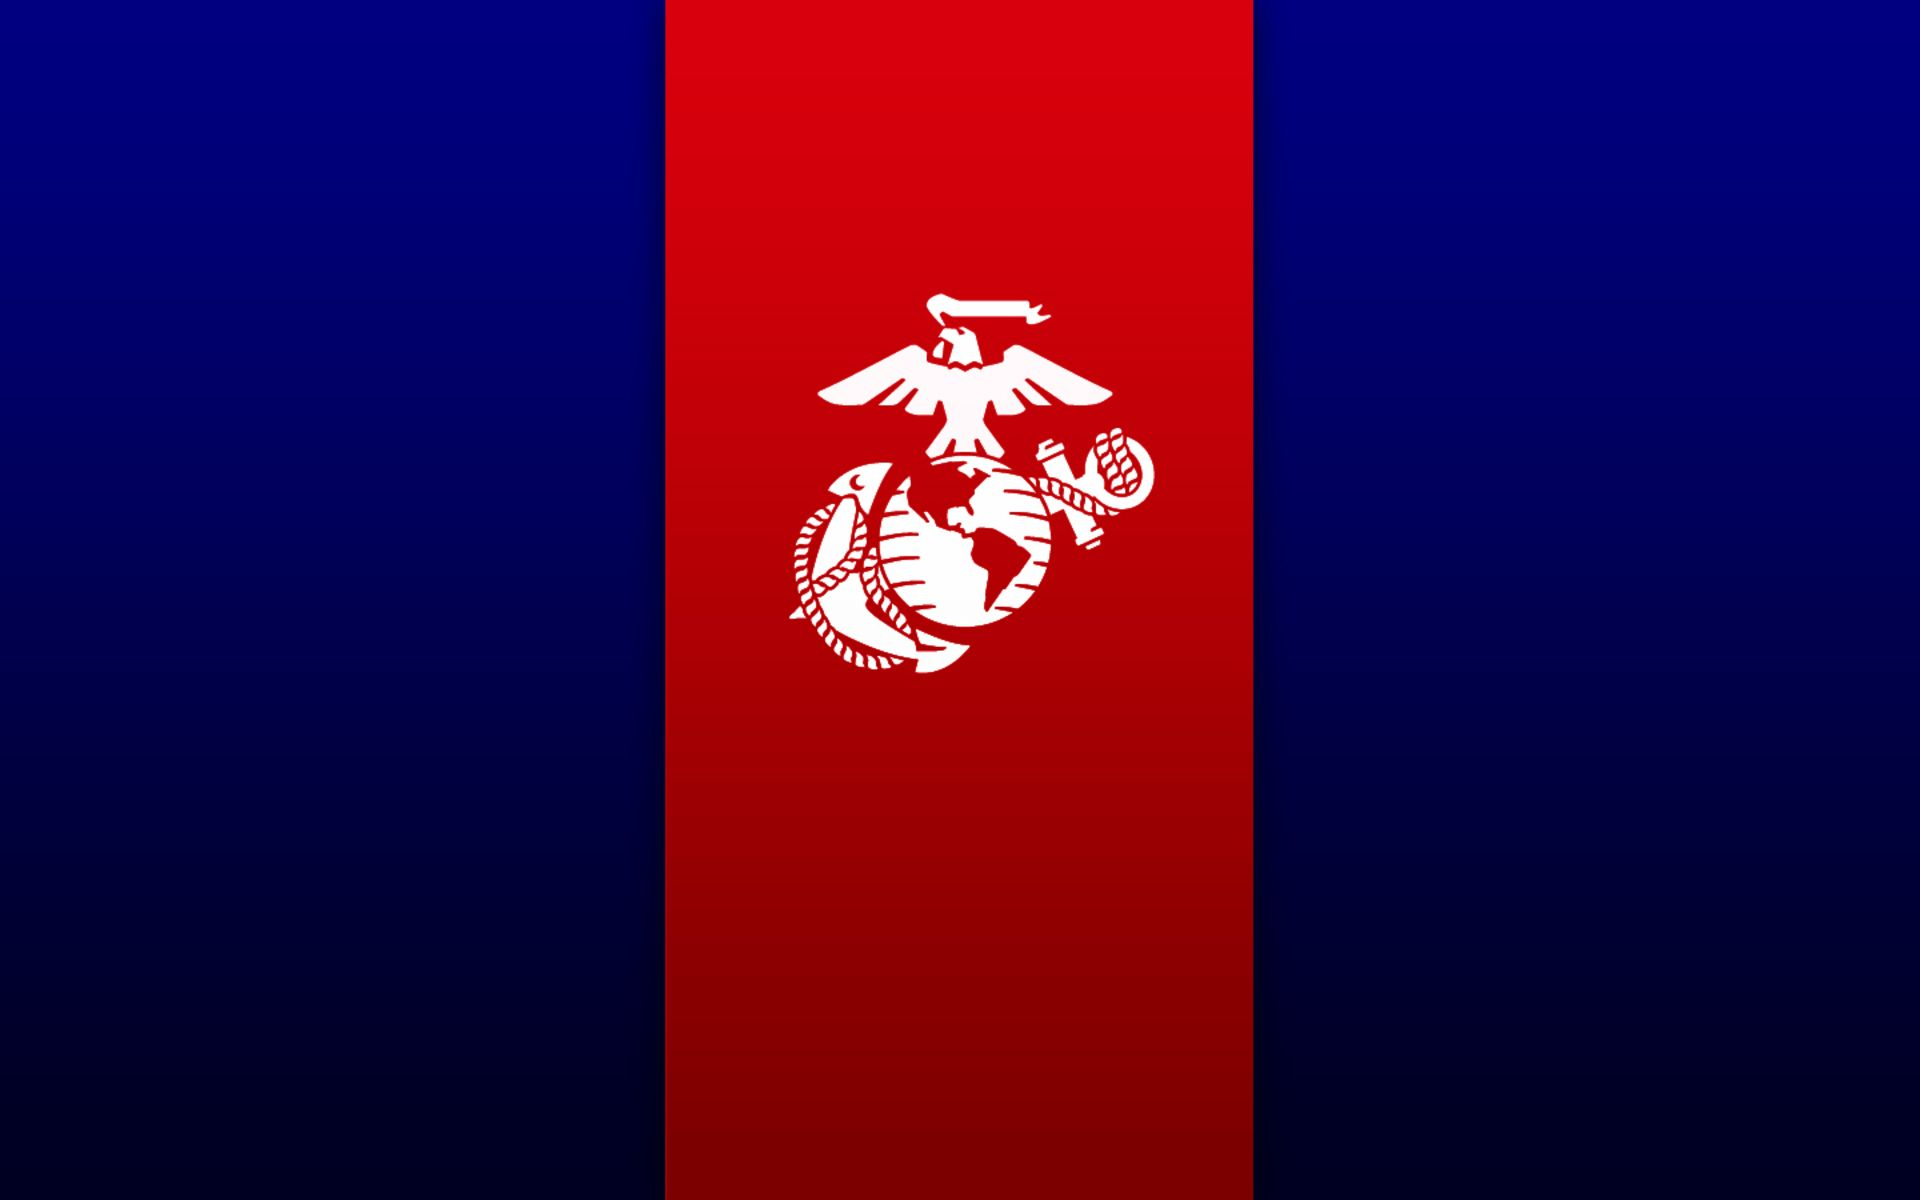 1920x1440 px hd desktop wallpaper : wallpapers usmc red and blue